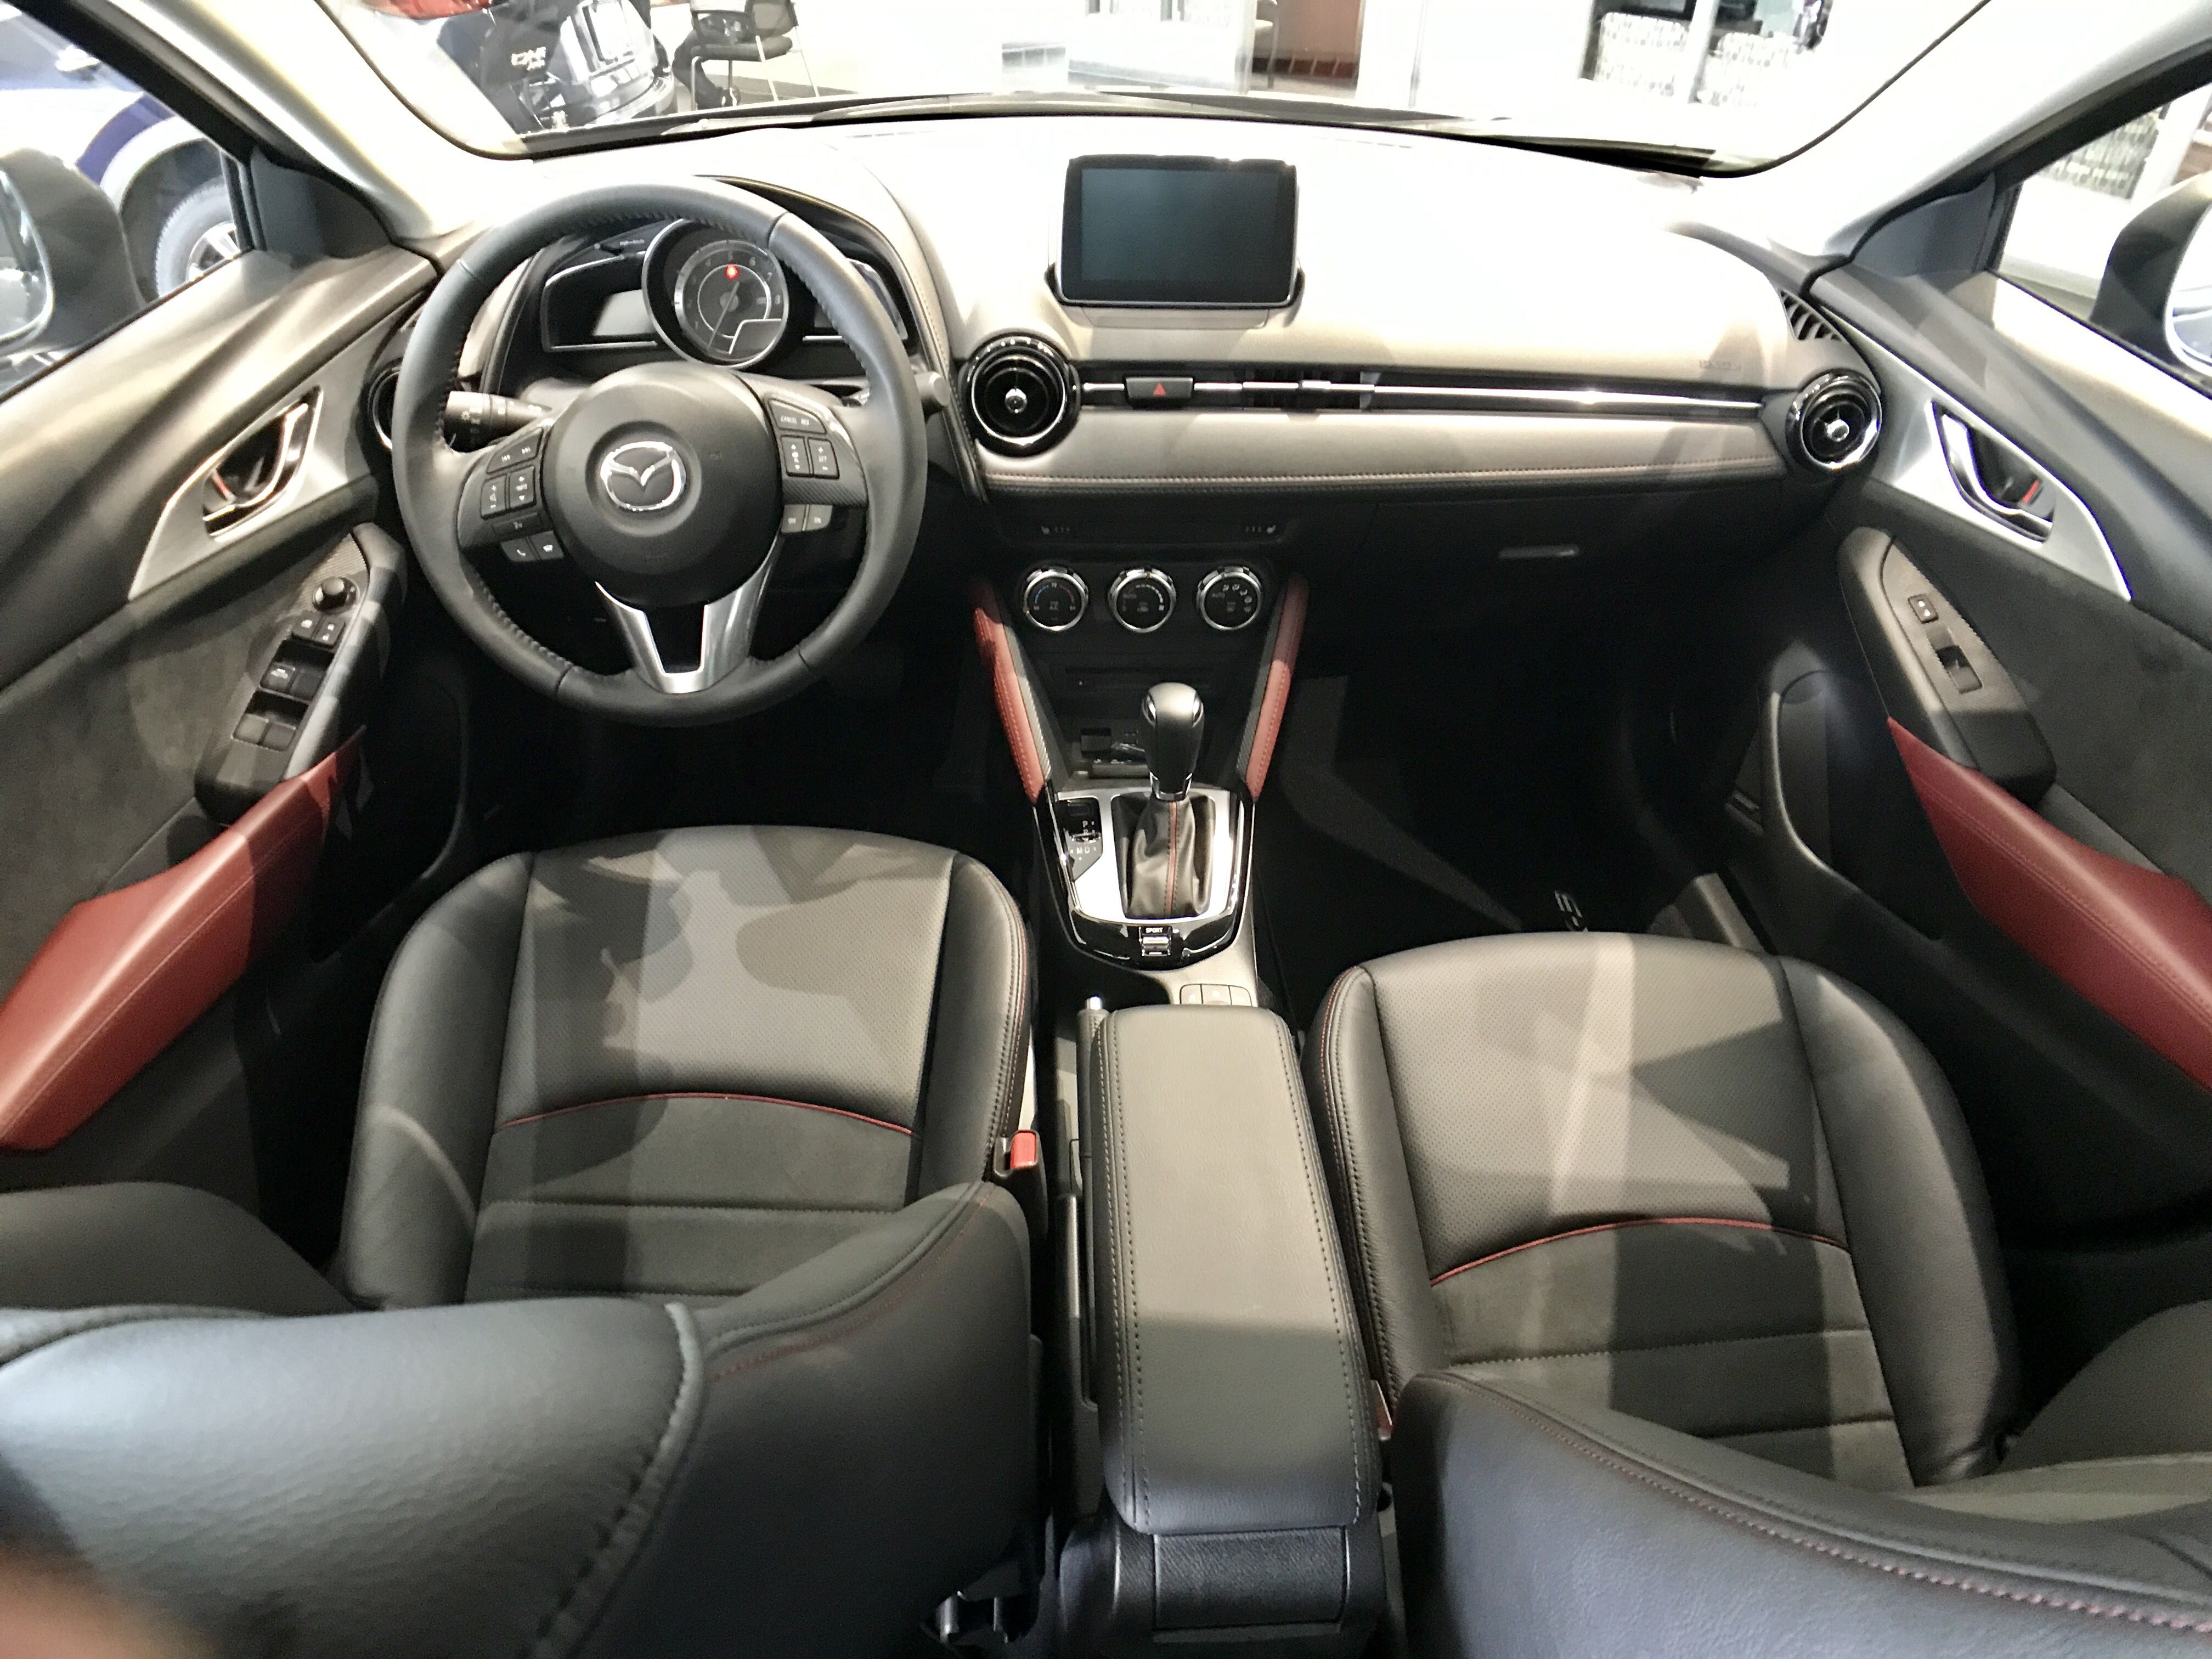 Mazda CX-3 interior front seat, black leather and suede ...